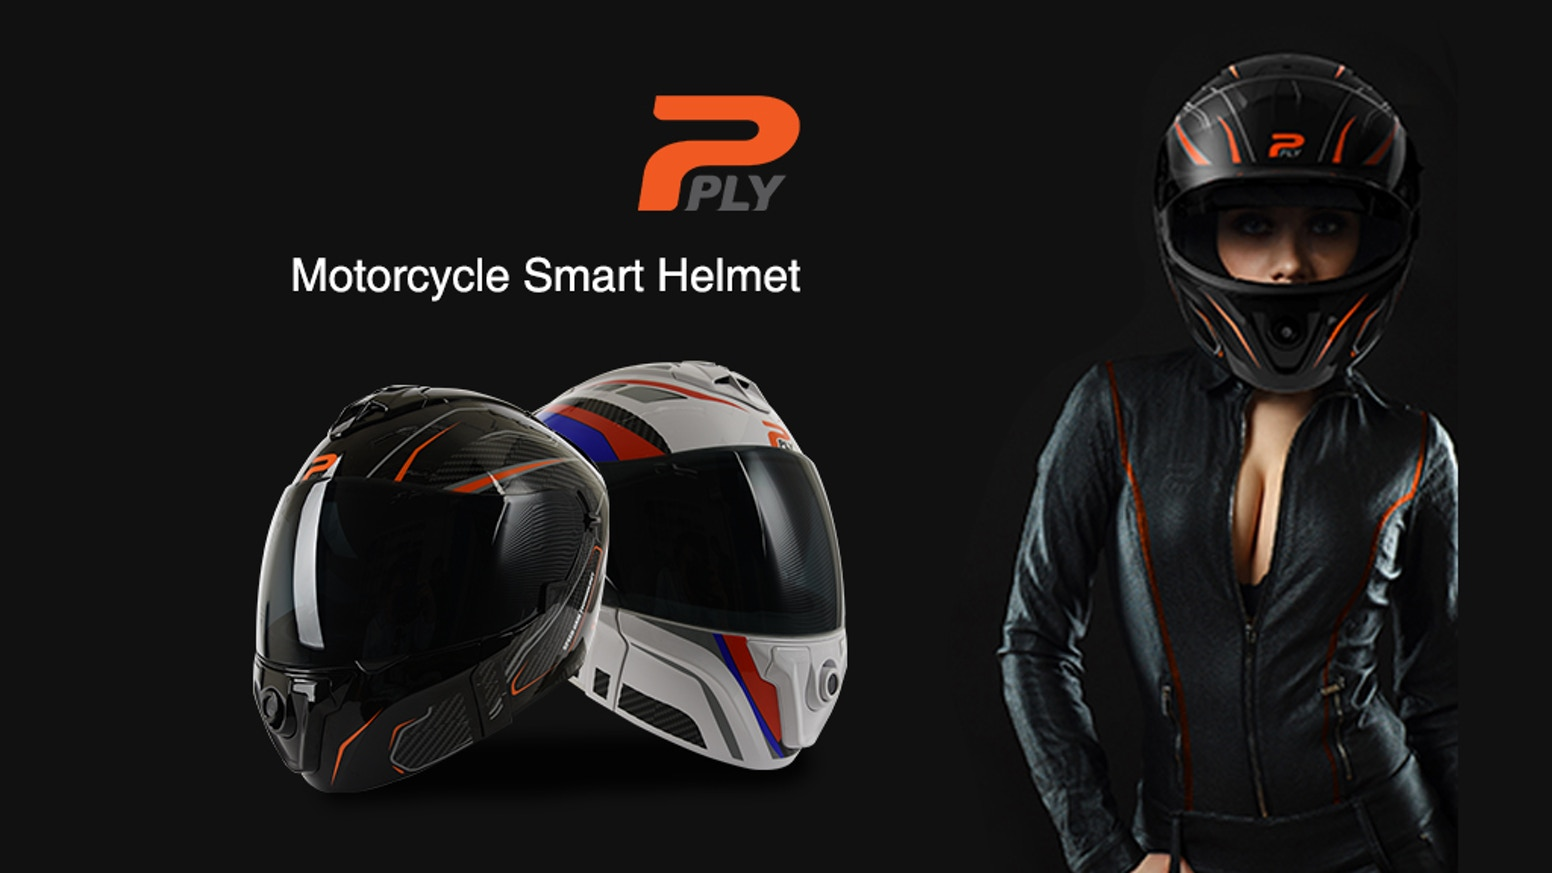 Smart Technology has finally arrived for the motorcycle enthusiast. Delivery - April 2018. Early Bird specials start at $399 (Limit 50)